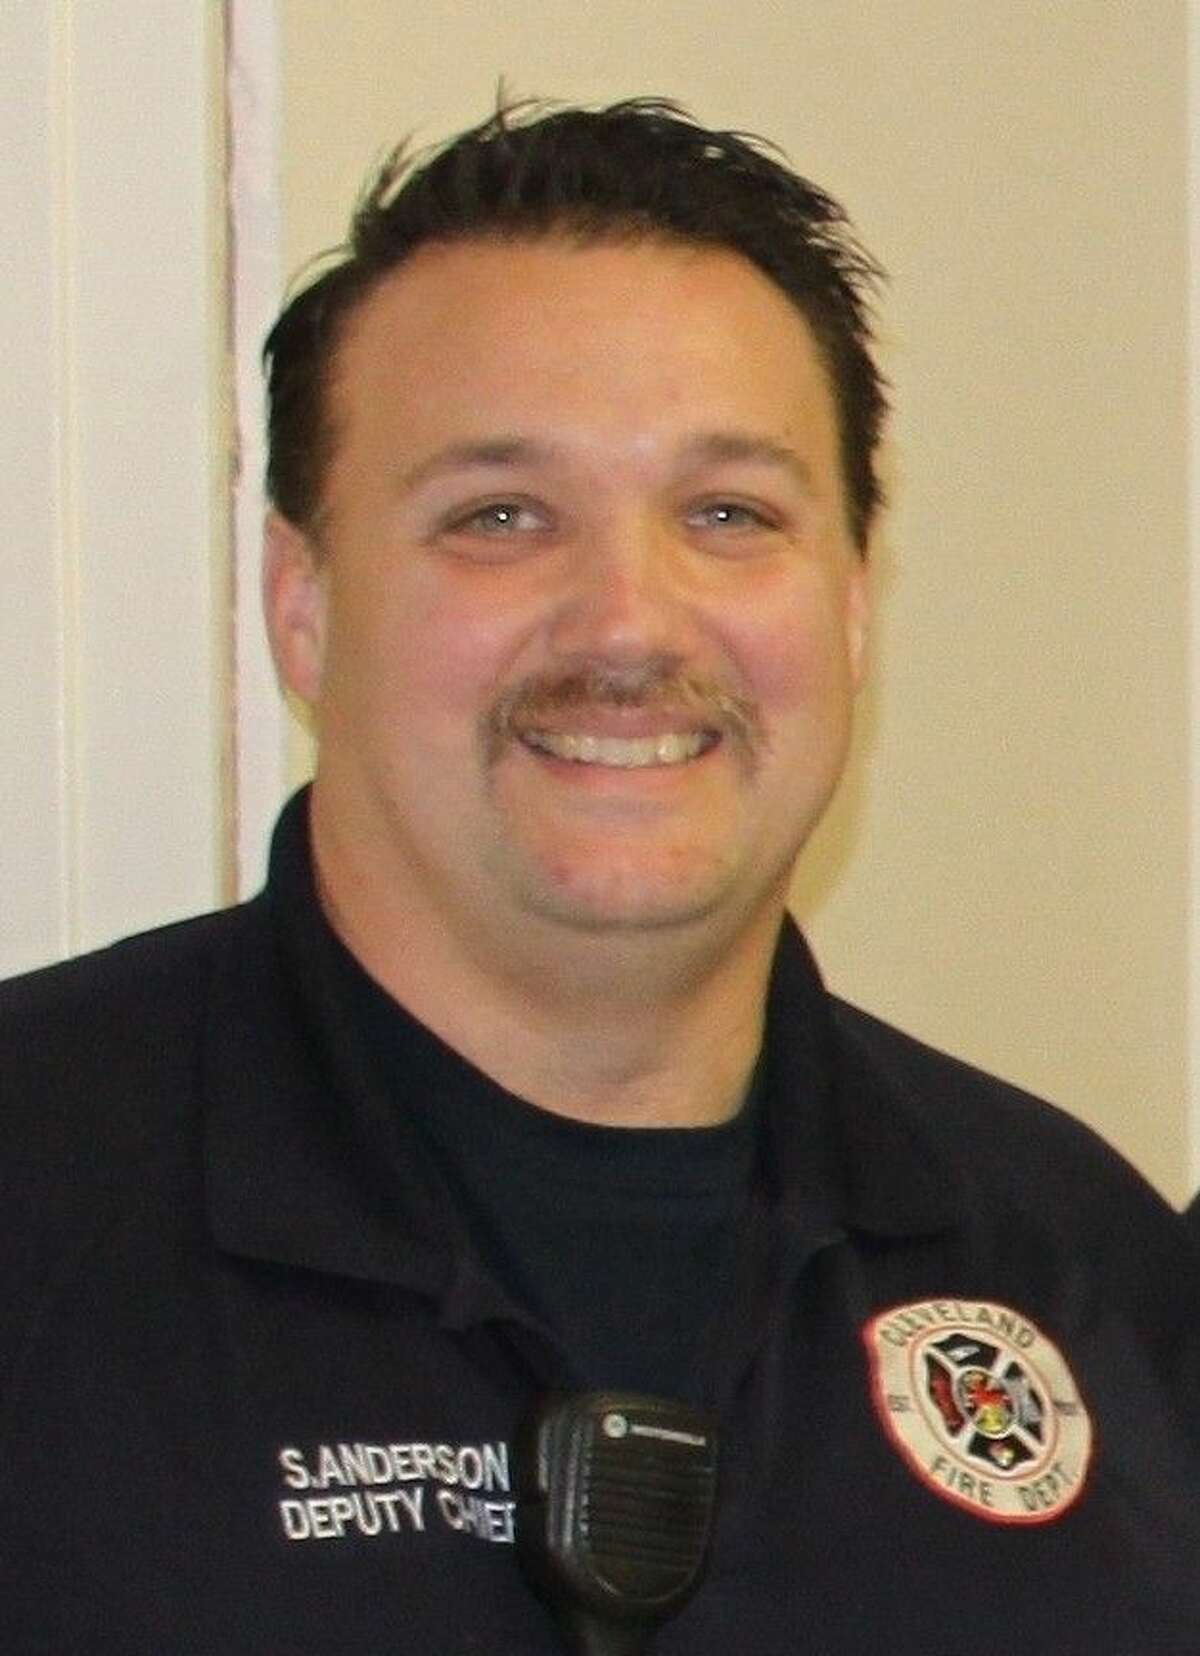 Sean Anderson is the interim fire chief for the City of Cleveland, effective immediately.